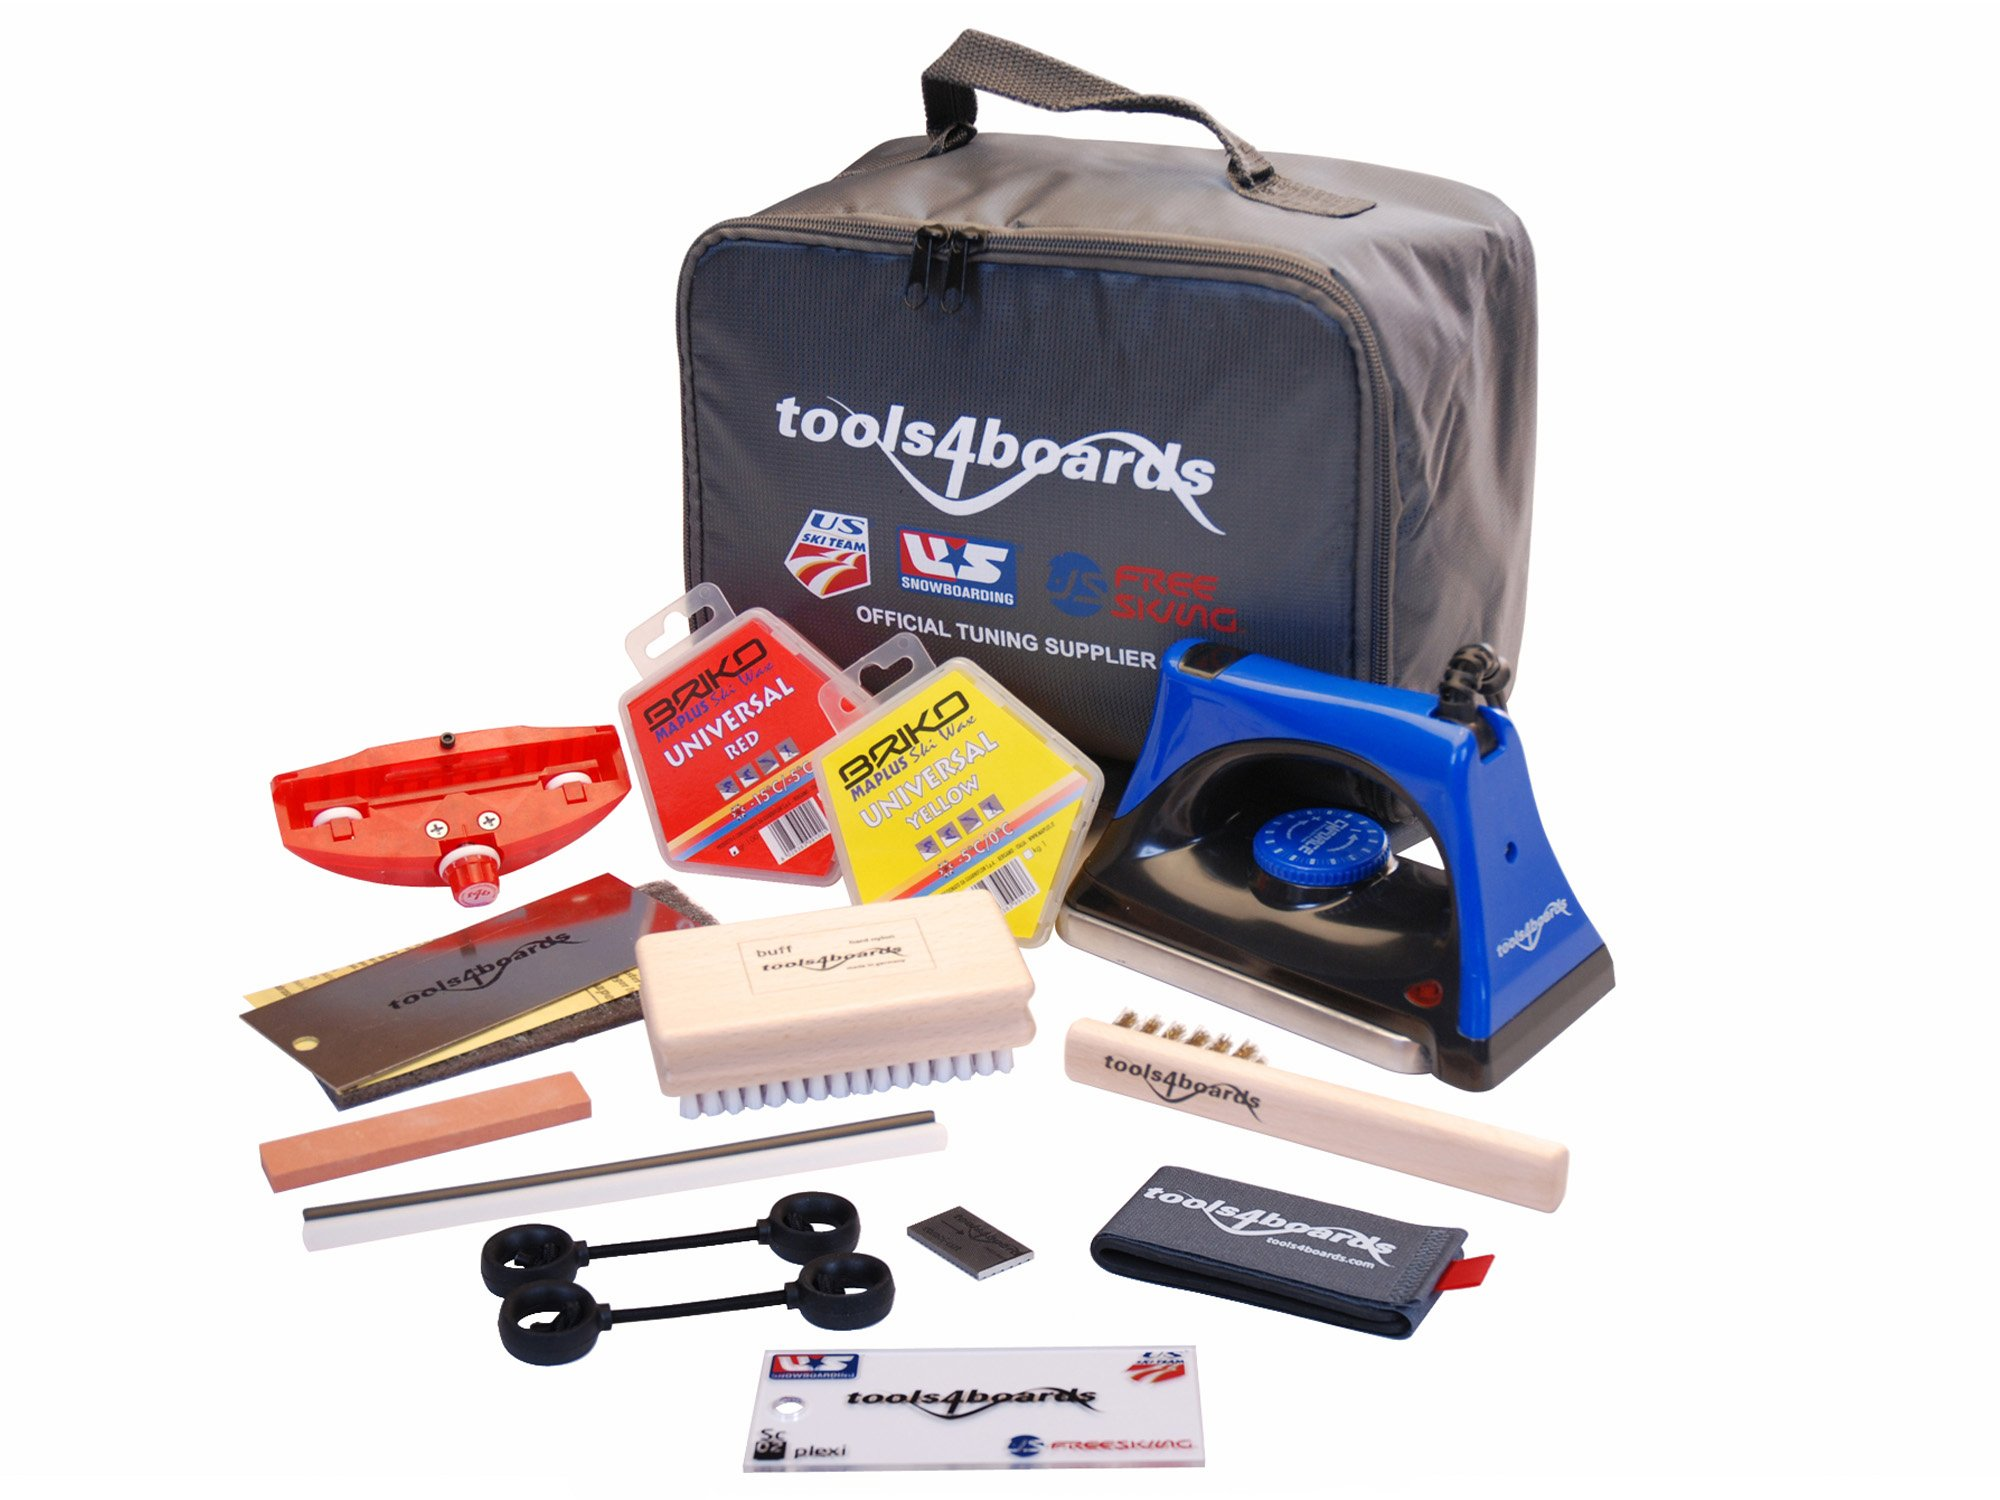 Tools4Boards Digital SuperStation Ski Tune Kit by Tools4Boards